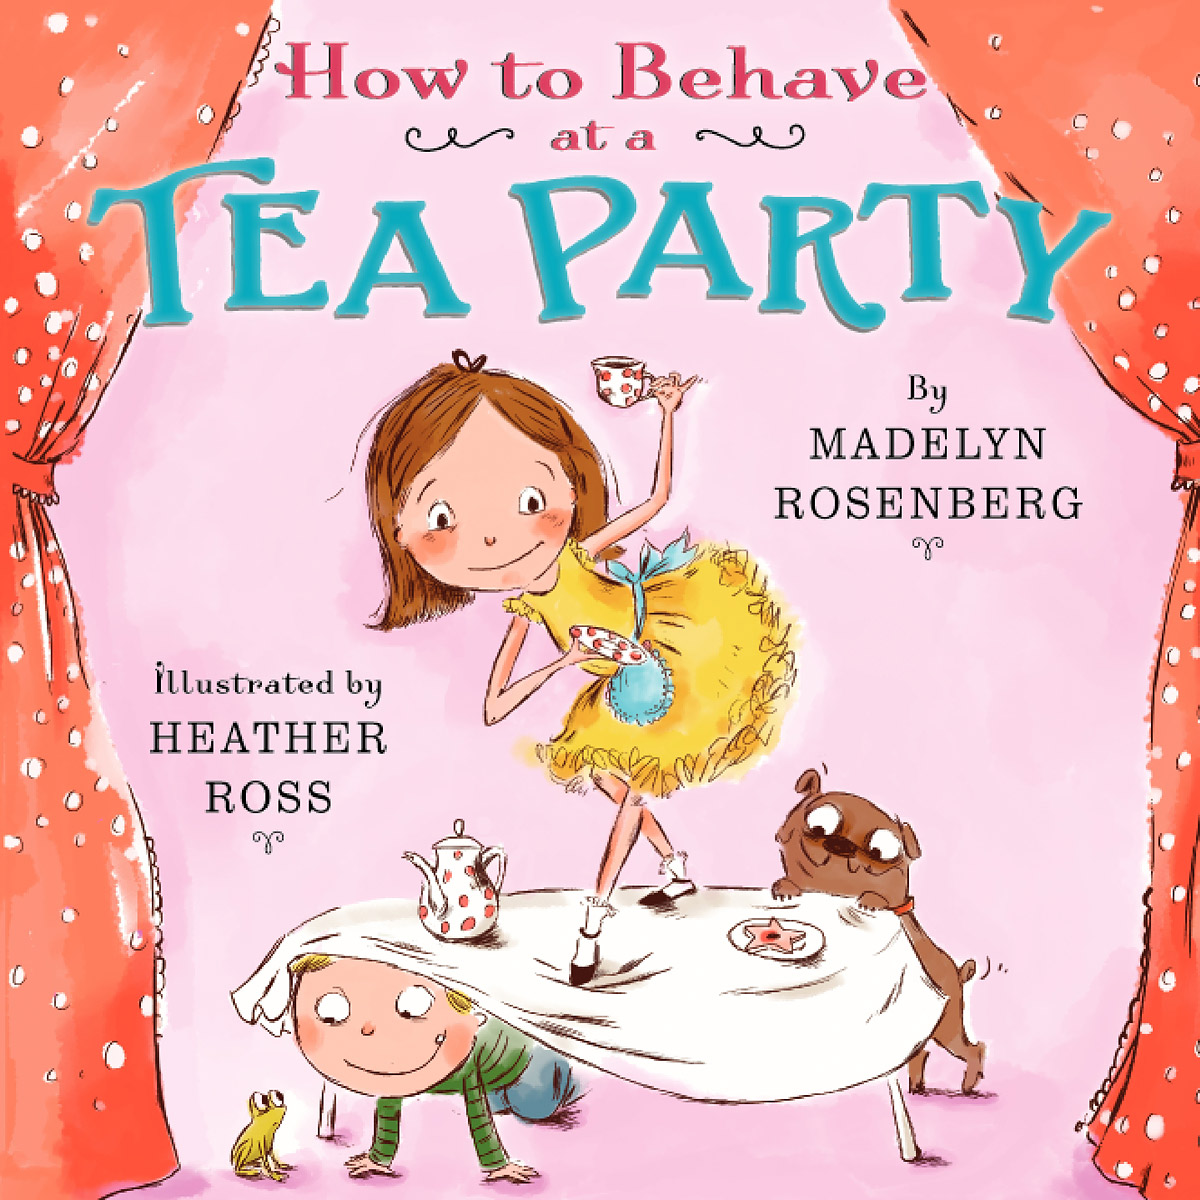 How to Behave at a Tea Party laugh out loud holiday jokes for kids